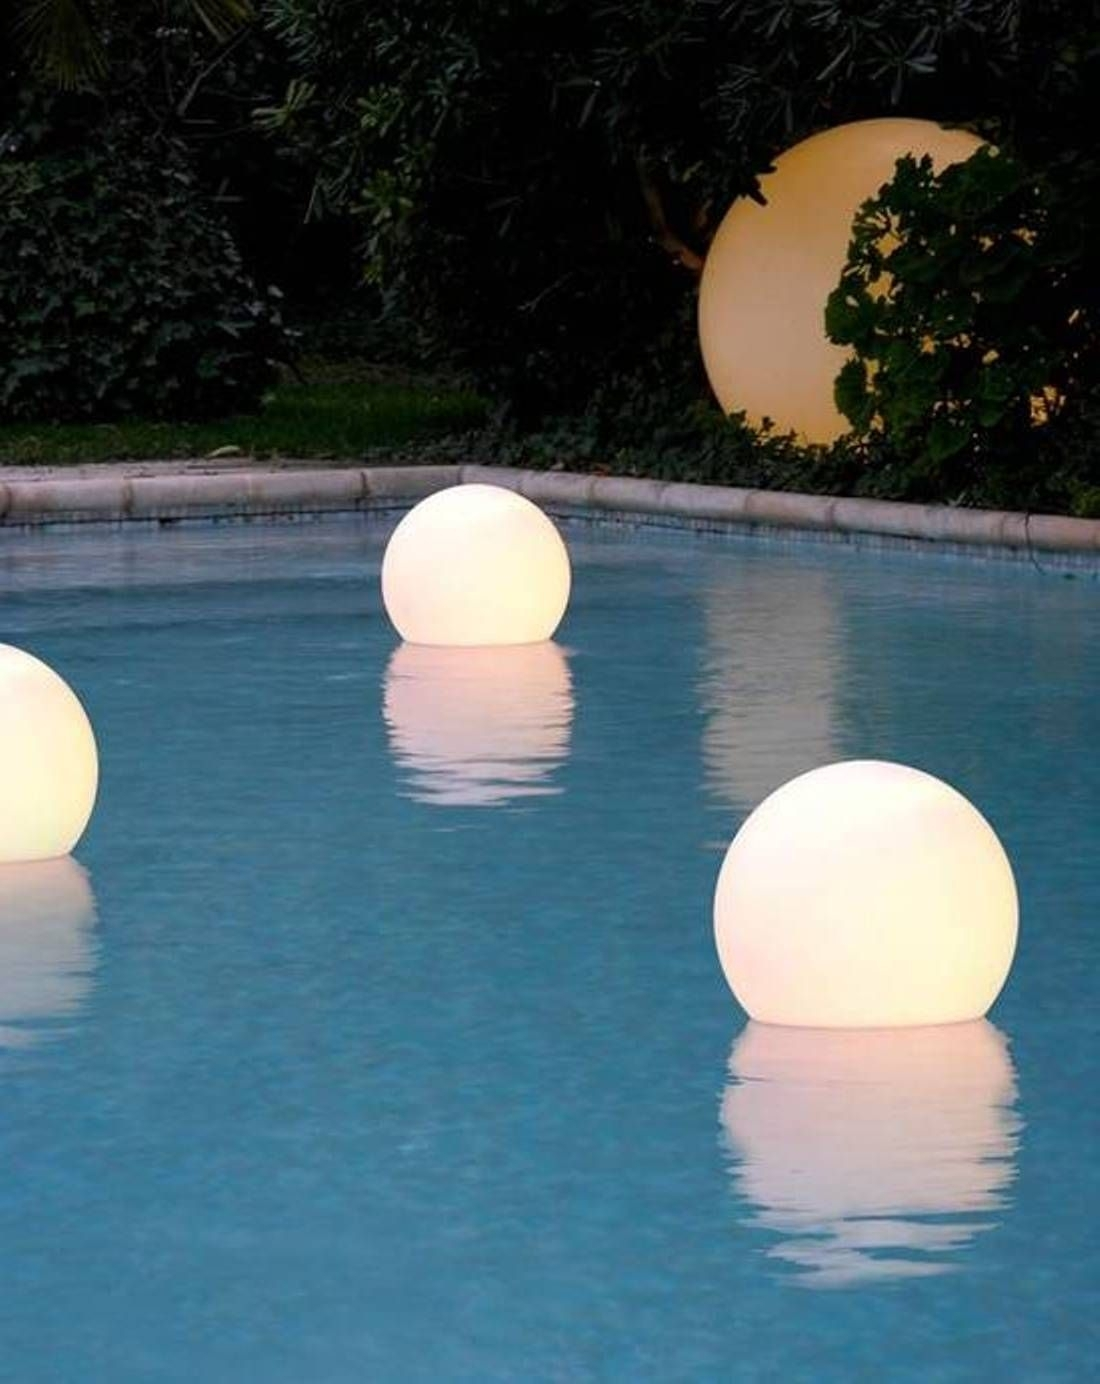 33 Wondrous Outdoor Pool Lanterns Floating Lights For Inground Pools throughout Outdoor Pool Lanterns (Image 7 of 20)